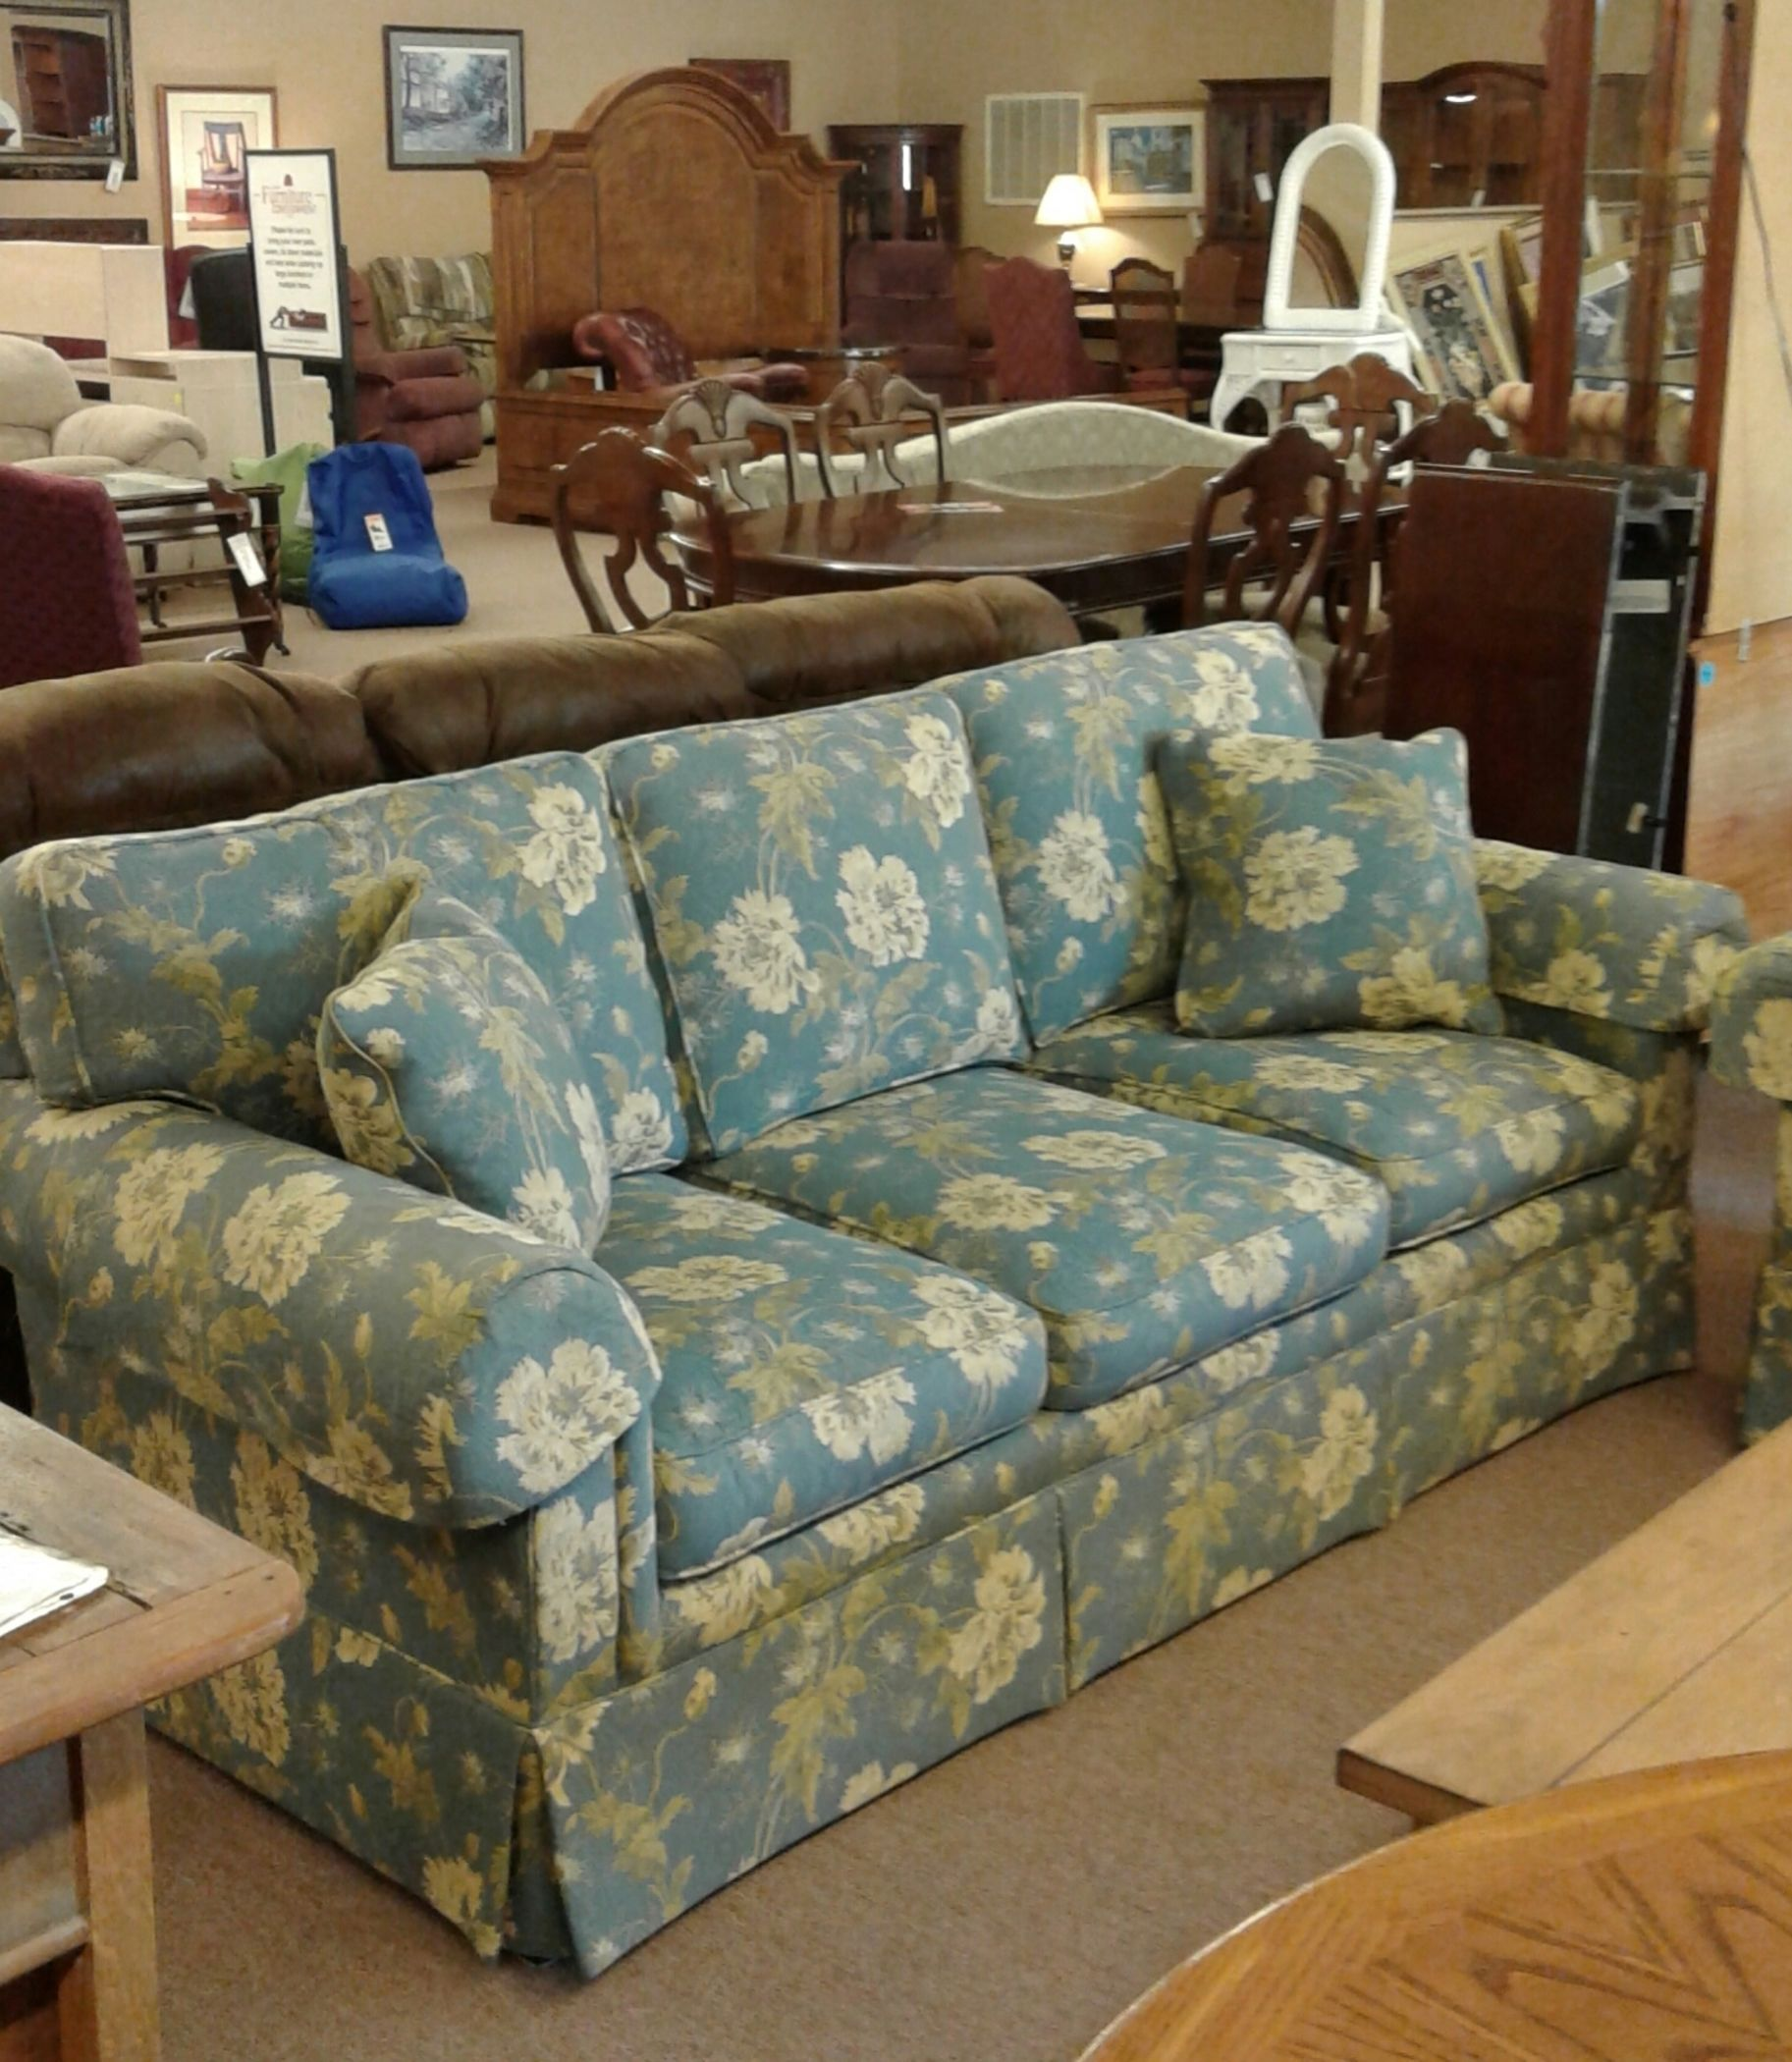 taylor king sofas leather online ireland sherrill blue floral sofa | delmarva furniture consignment